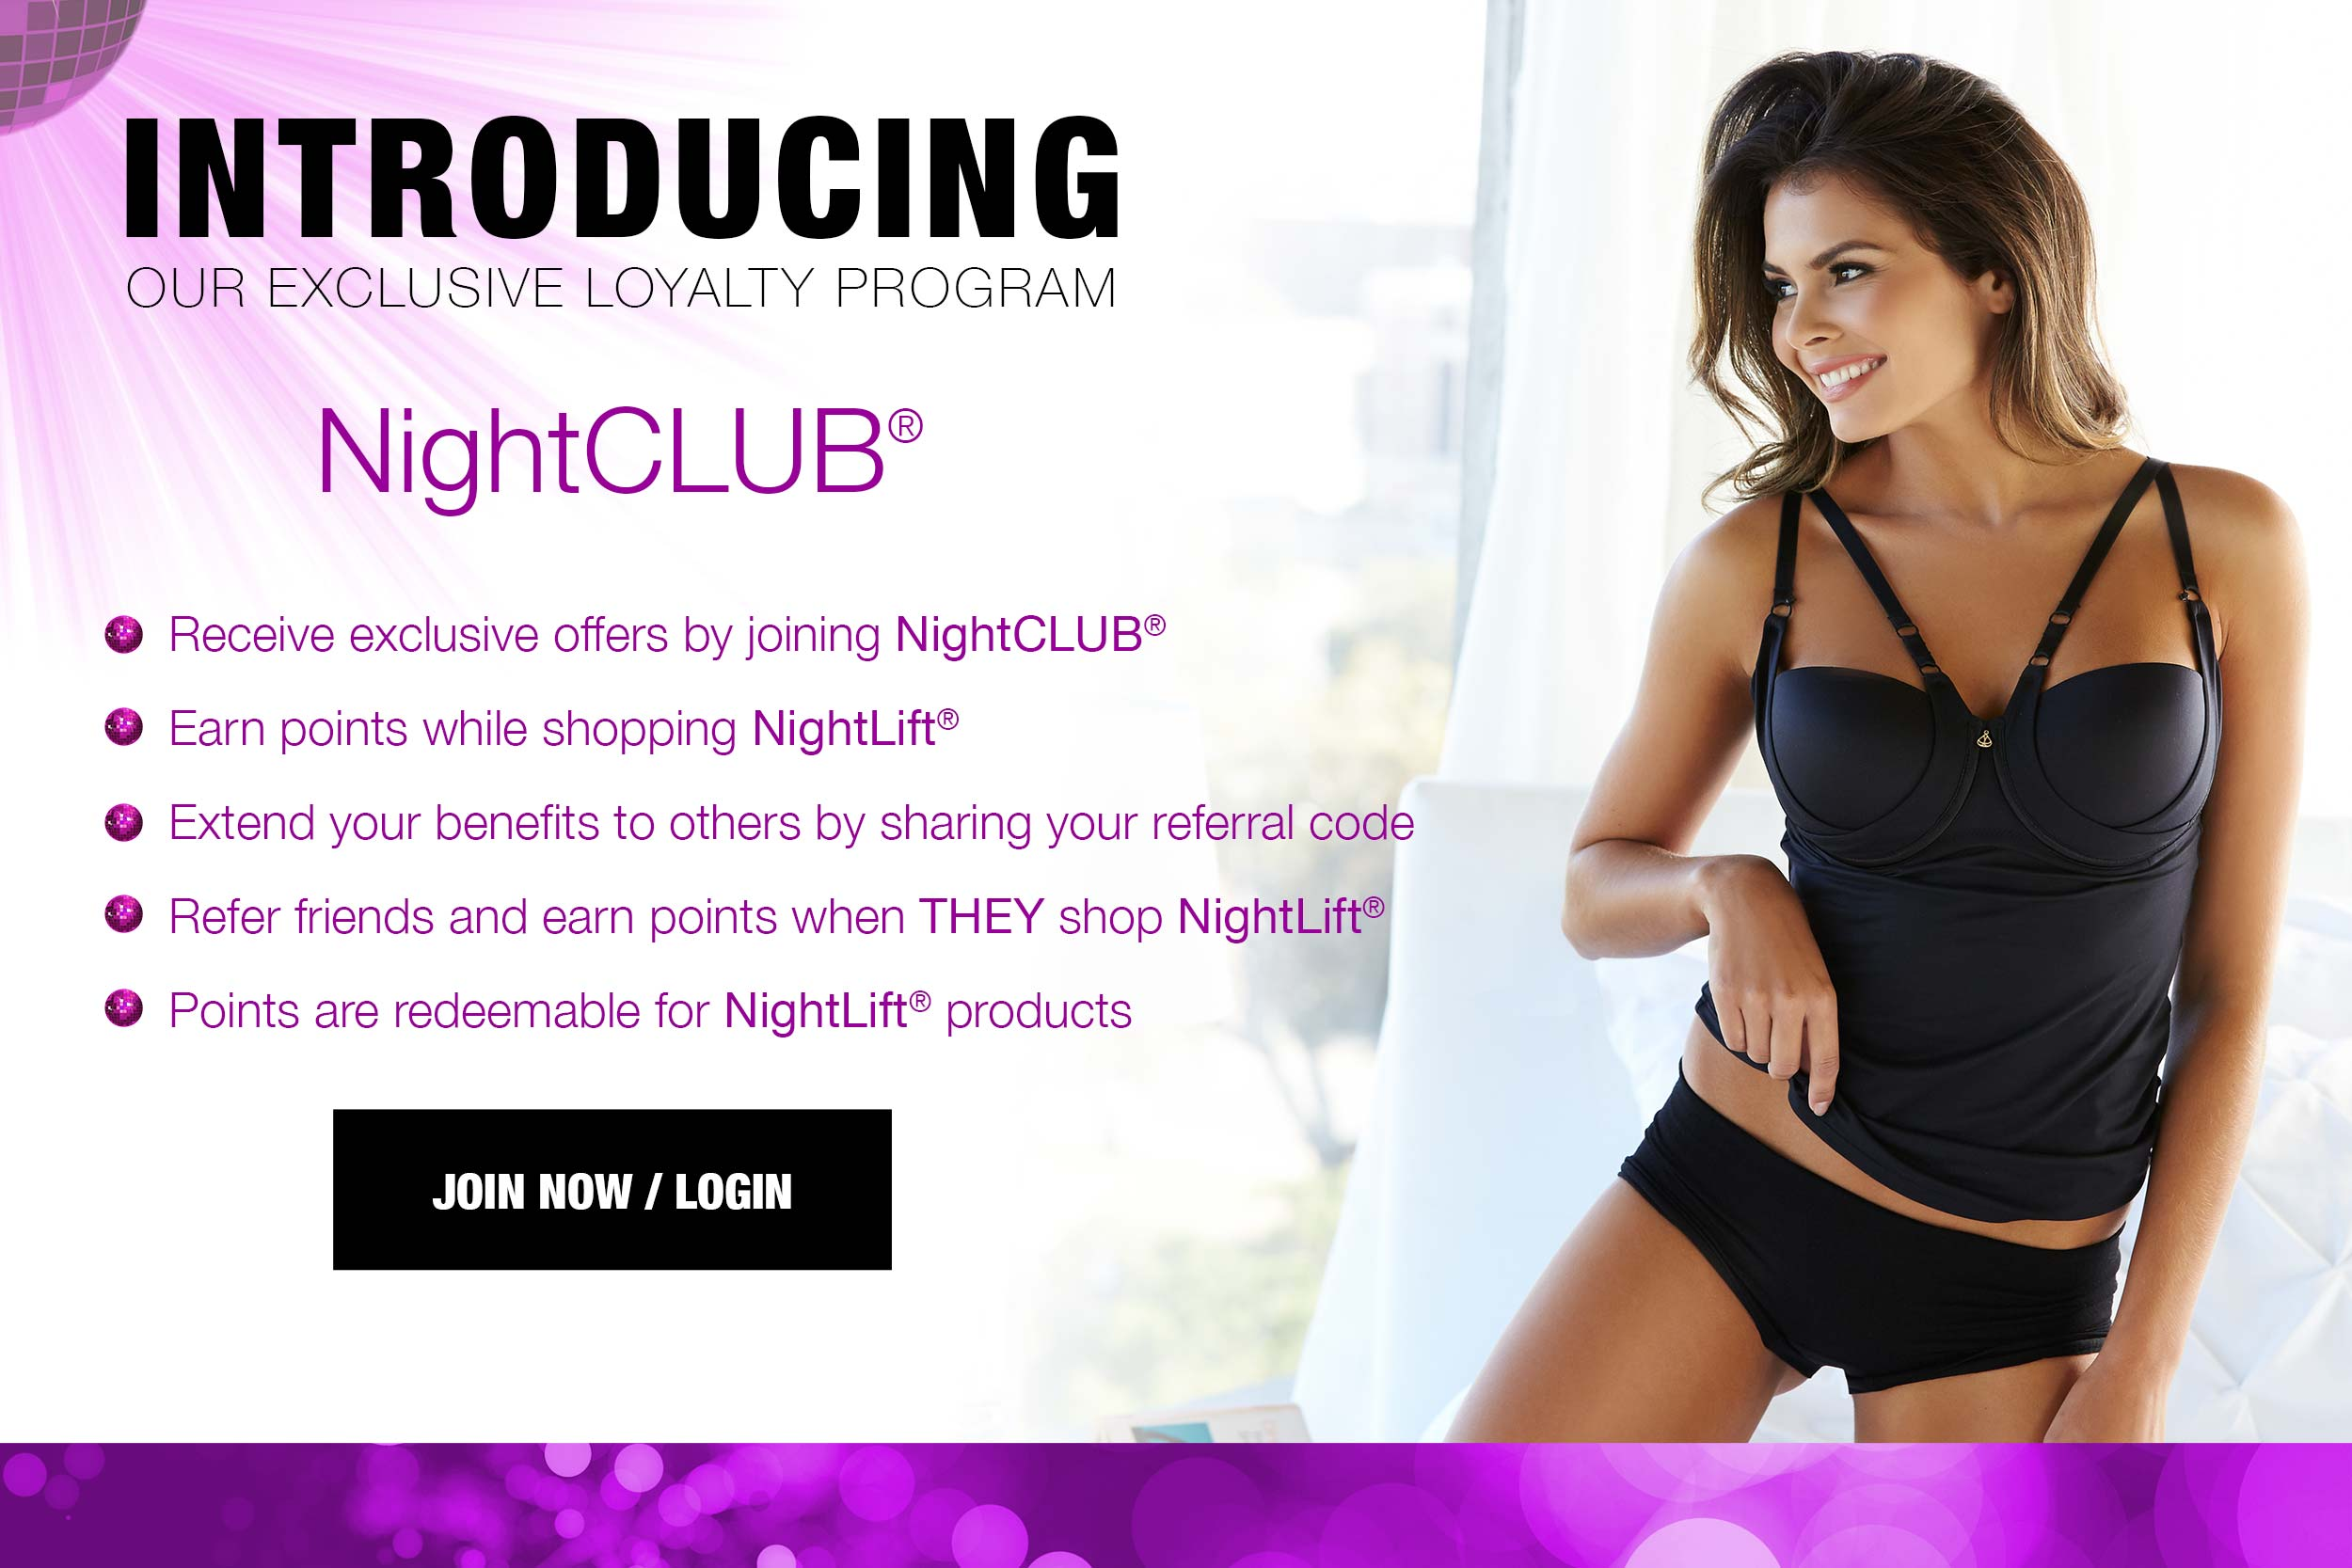 NightCLUB rewards program